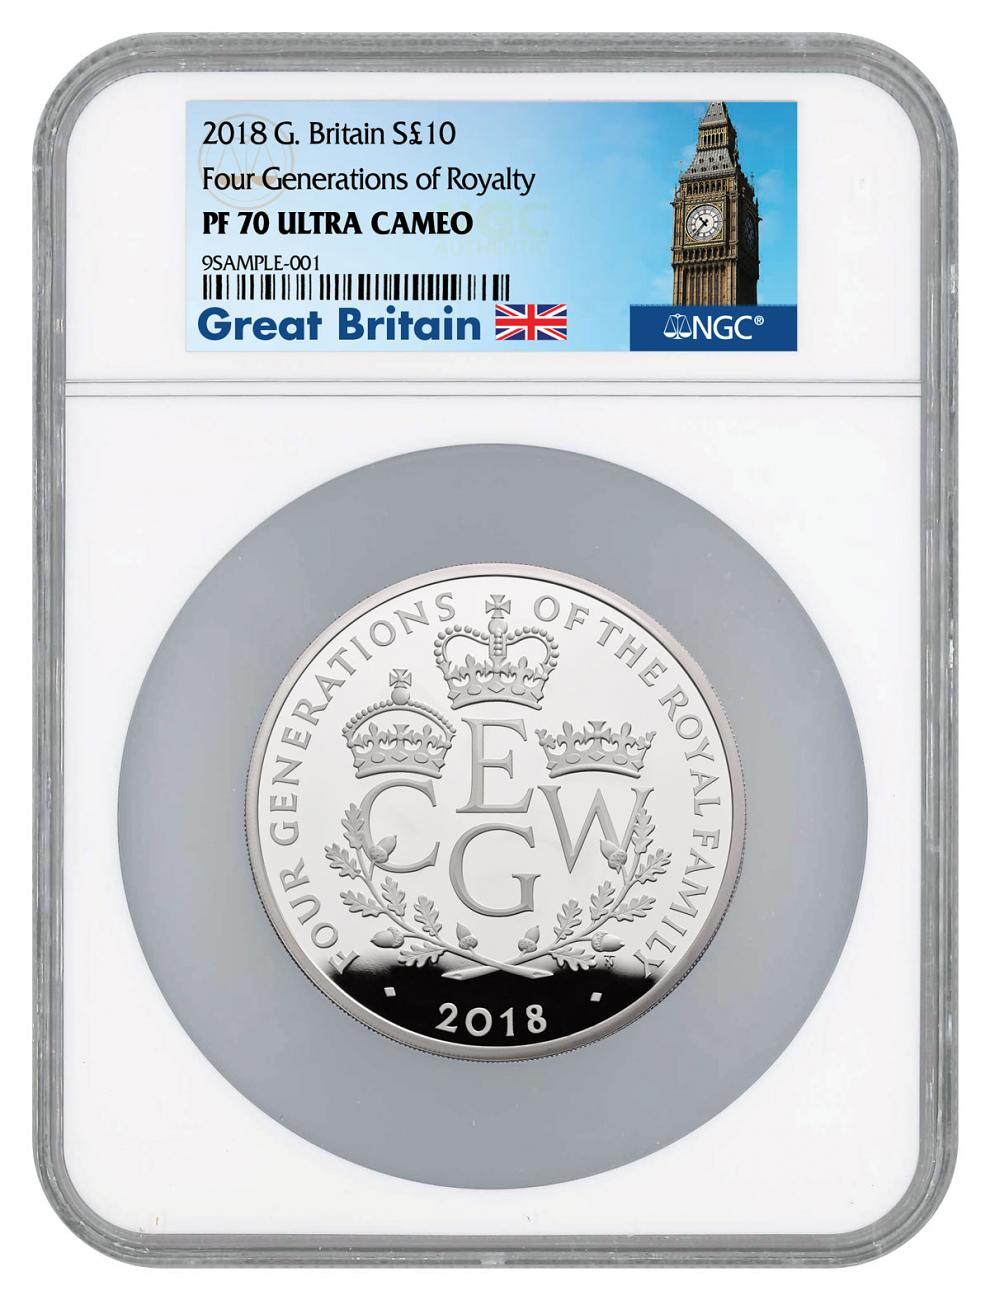 2018 Great Britain Four Generations of Royalty 5 oz Silver Proof £10 Coin NGC PF70 UC Exclusive Big Ben Label